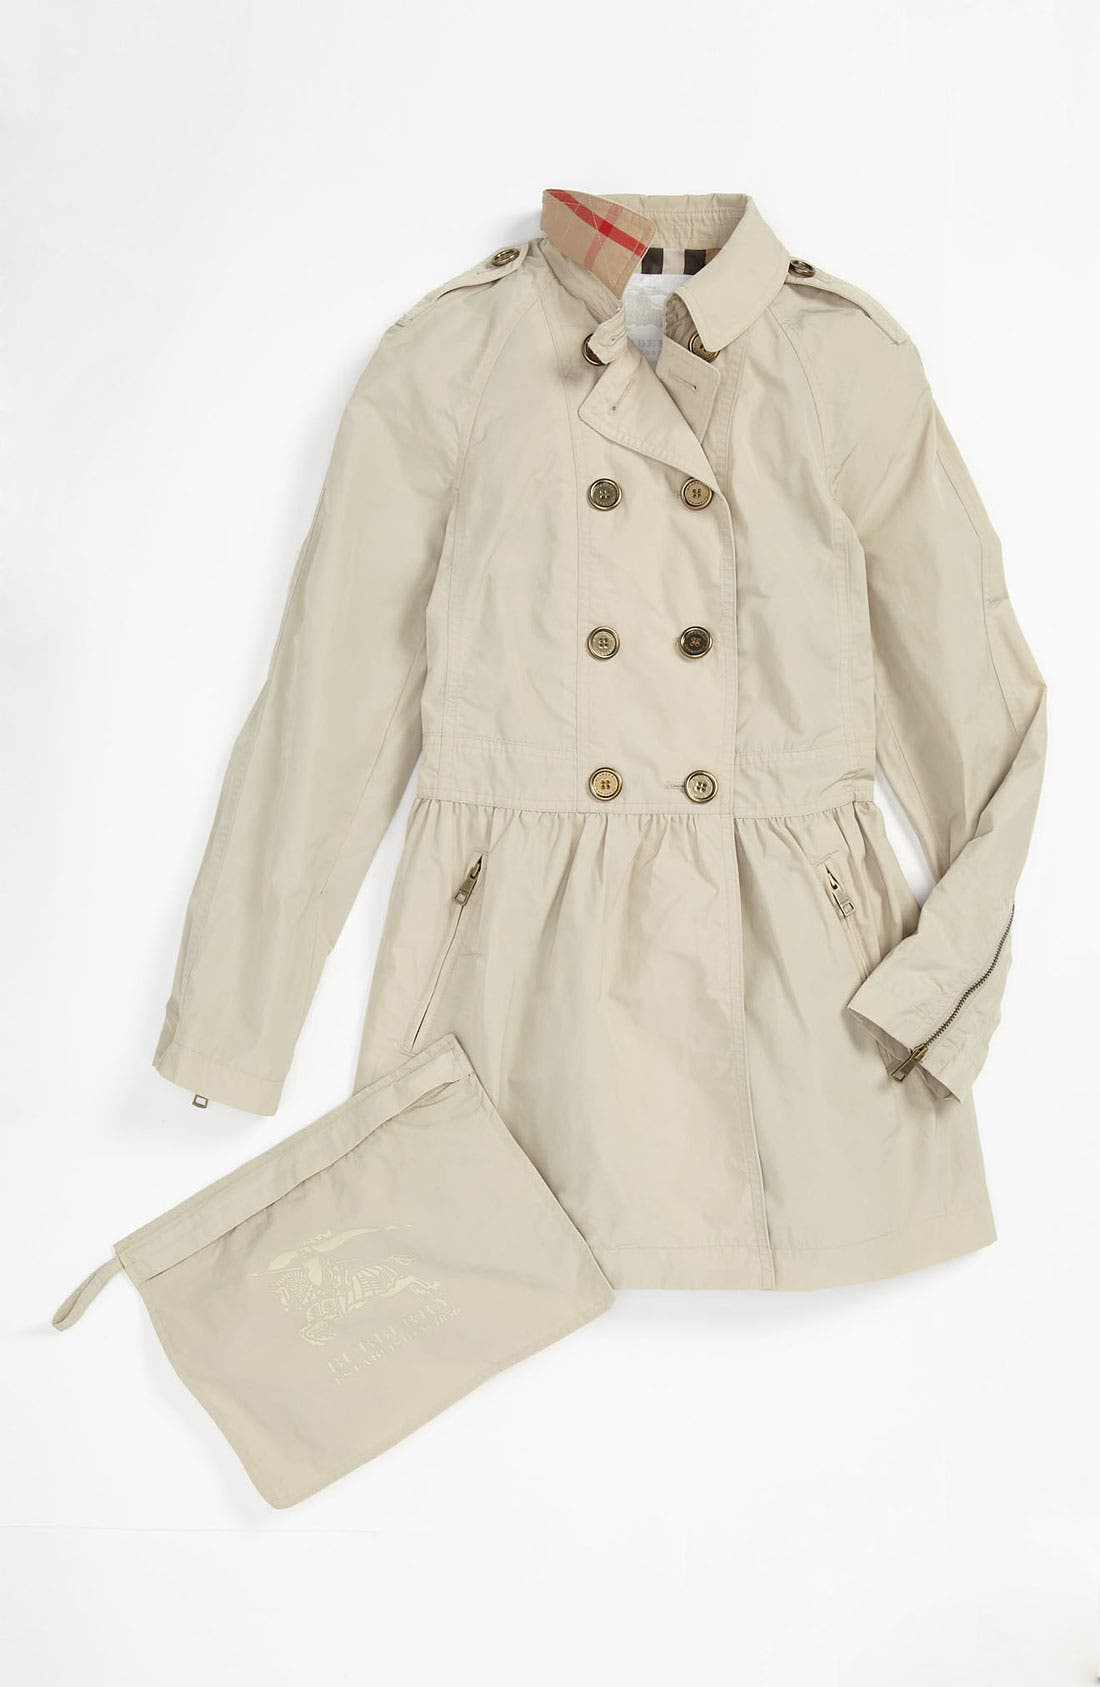 Alternate Image 1 Selected - Burberry 'Mini Mantlebury' Double Breasted Trench Coat (Little Girls & Big Girls)